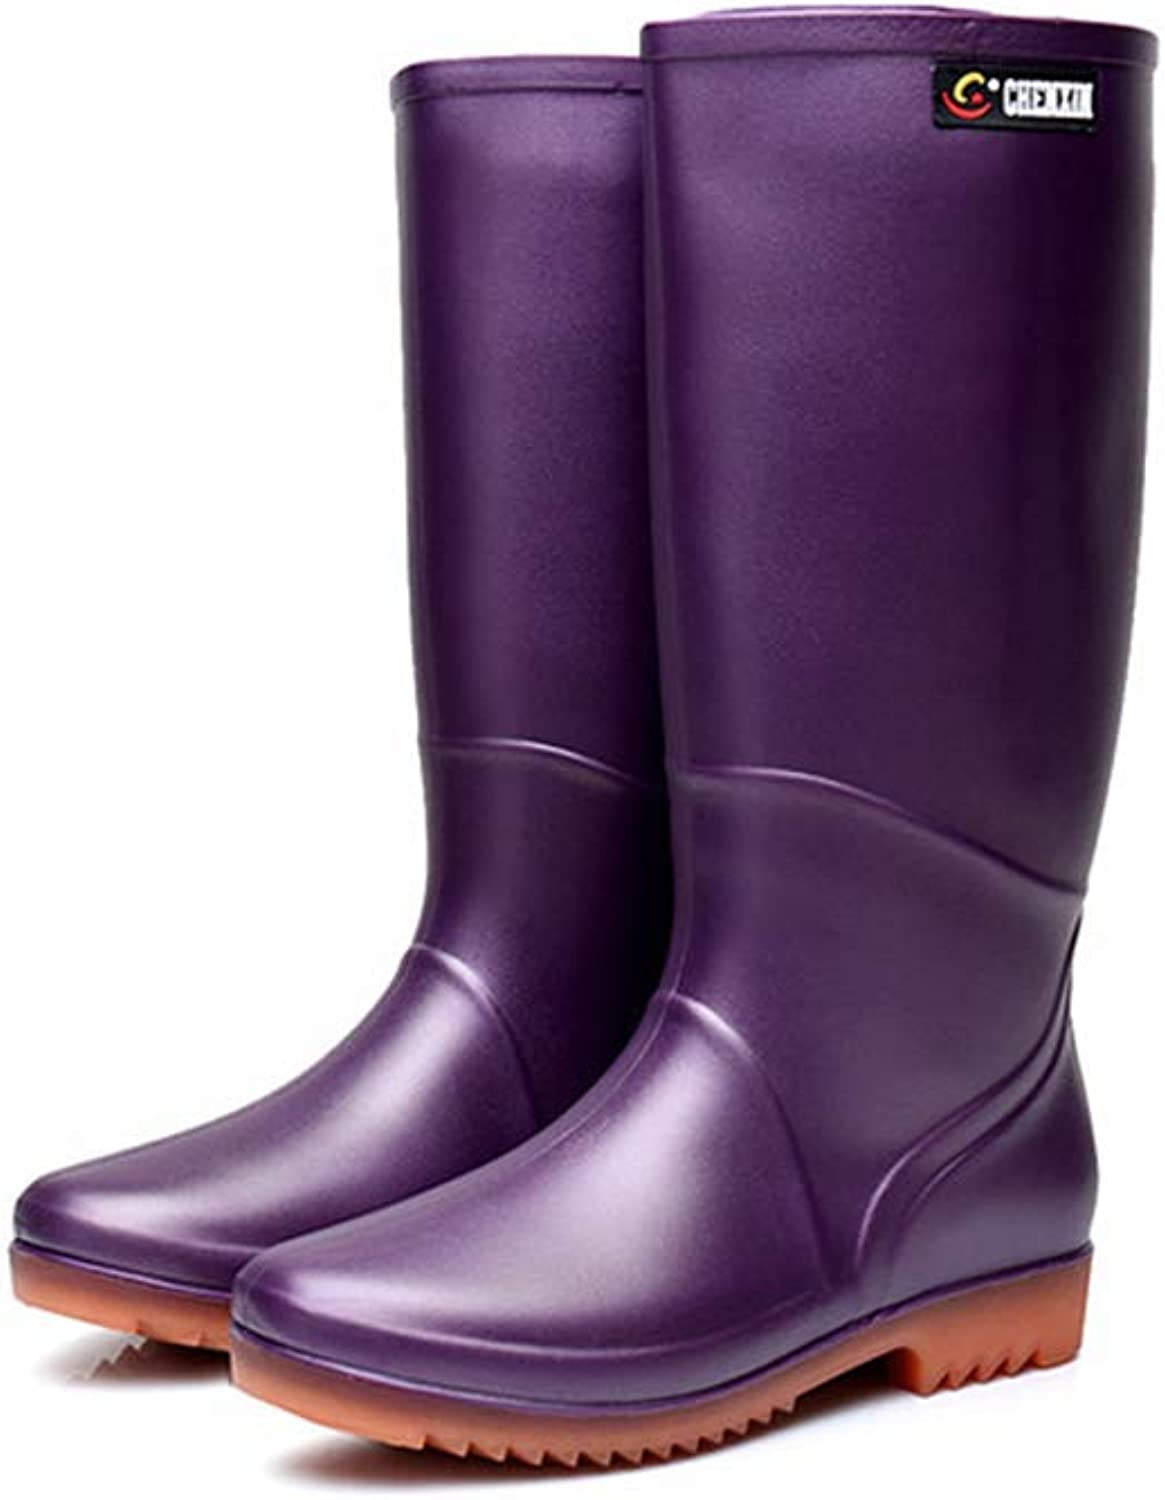 CHENSF Womens Winter Rain Snow Flat Rubber Mid Calf Short Rainboot